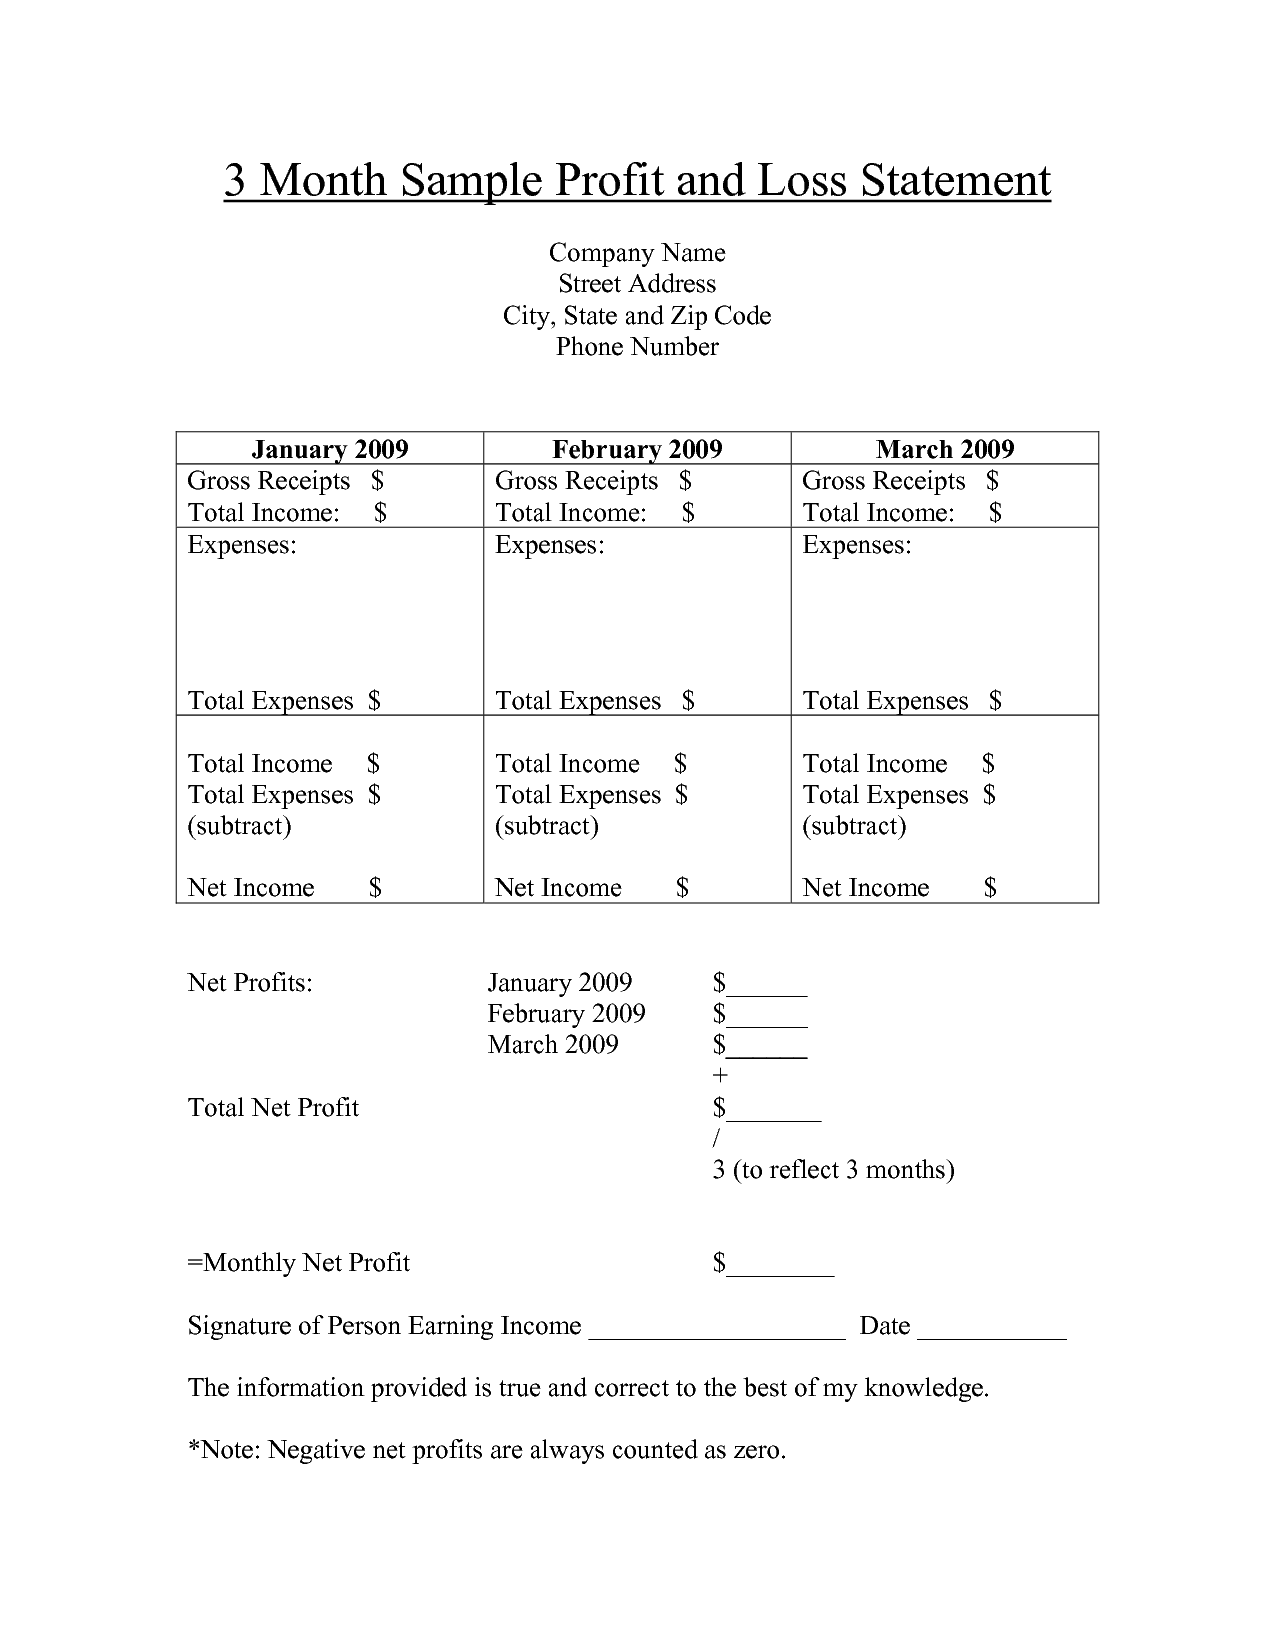 Free Printable Profit and Loss Statement Form for Home Care Bing – Personal Profit and Loss Statement Form